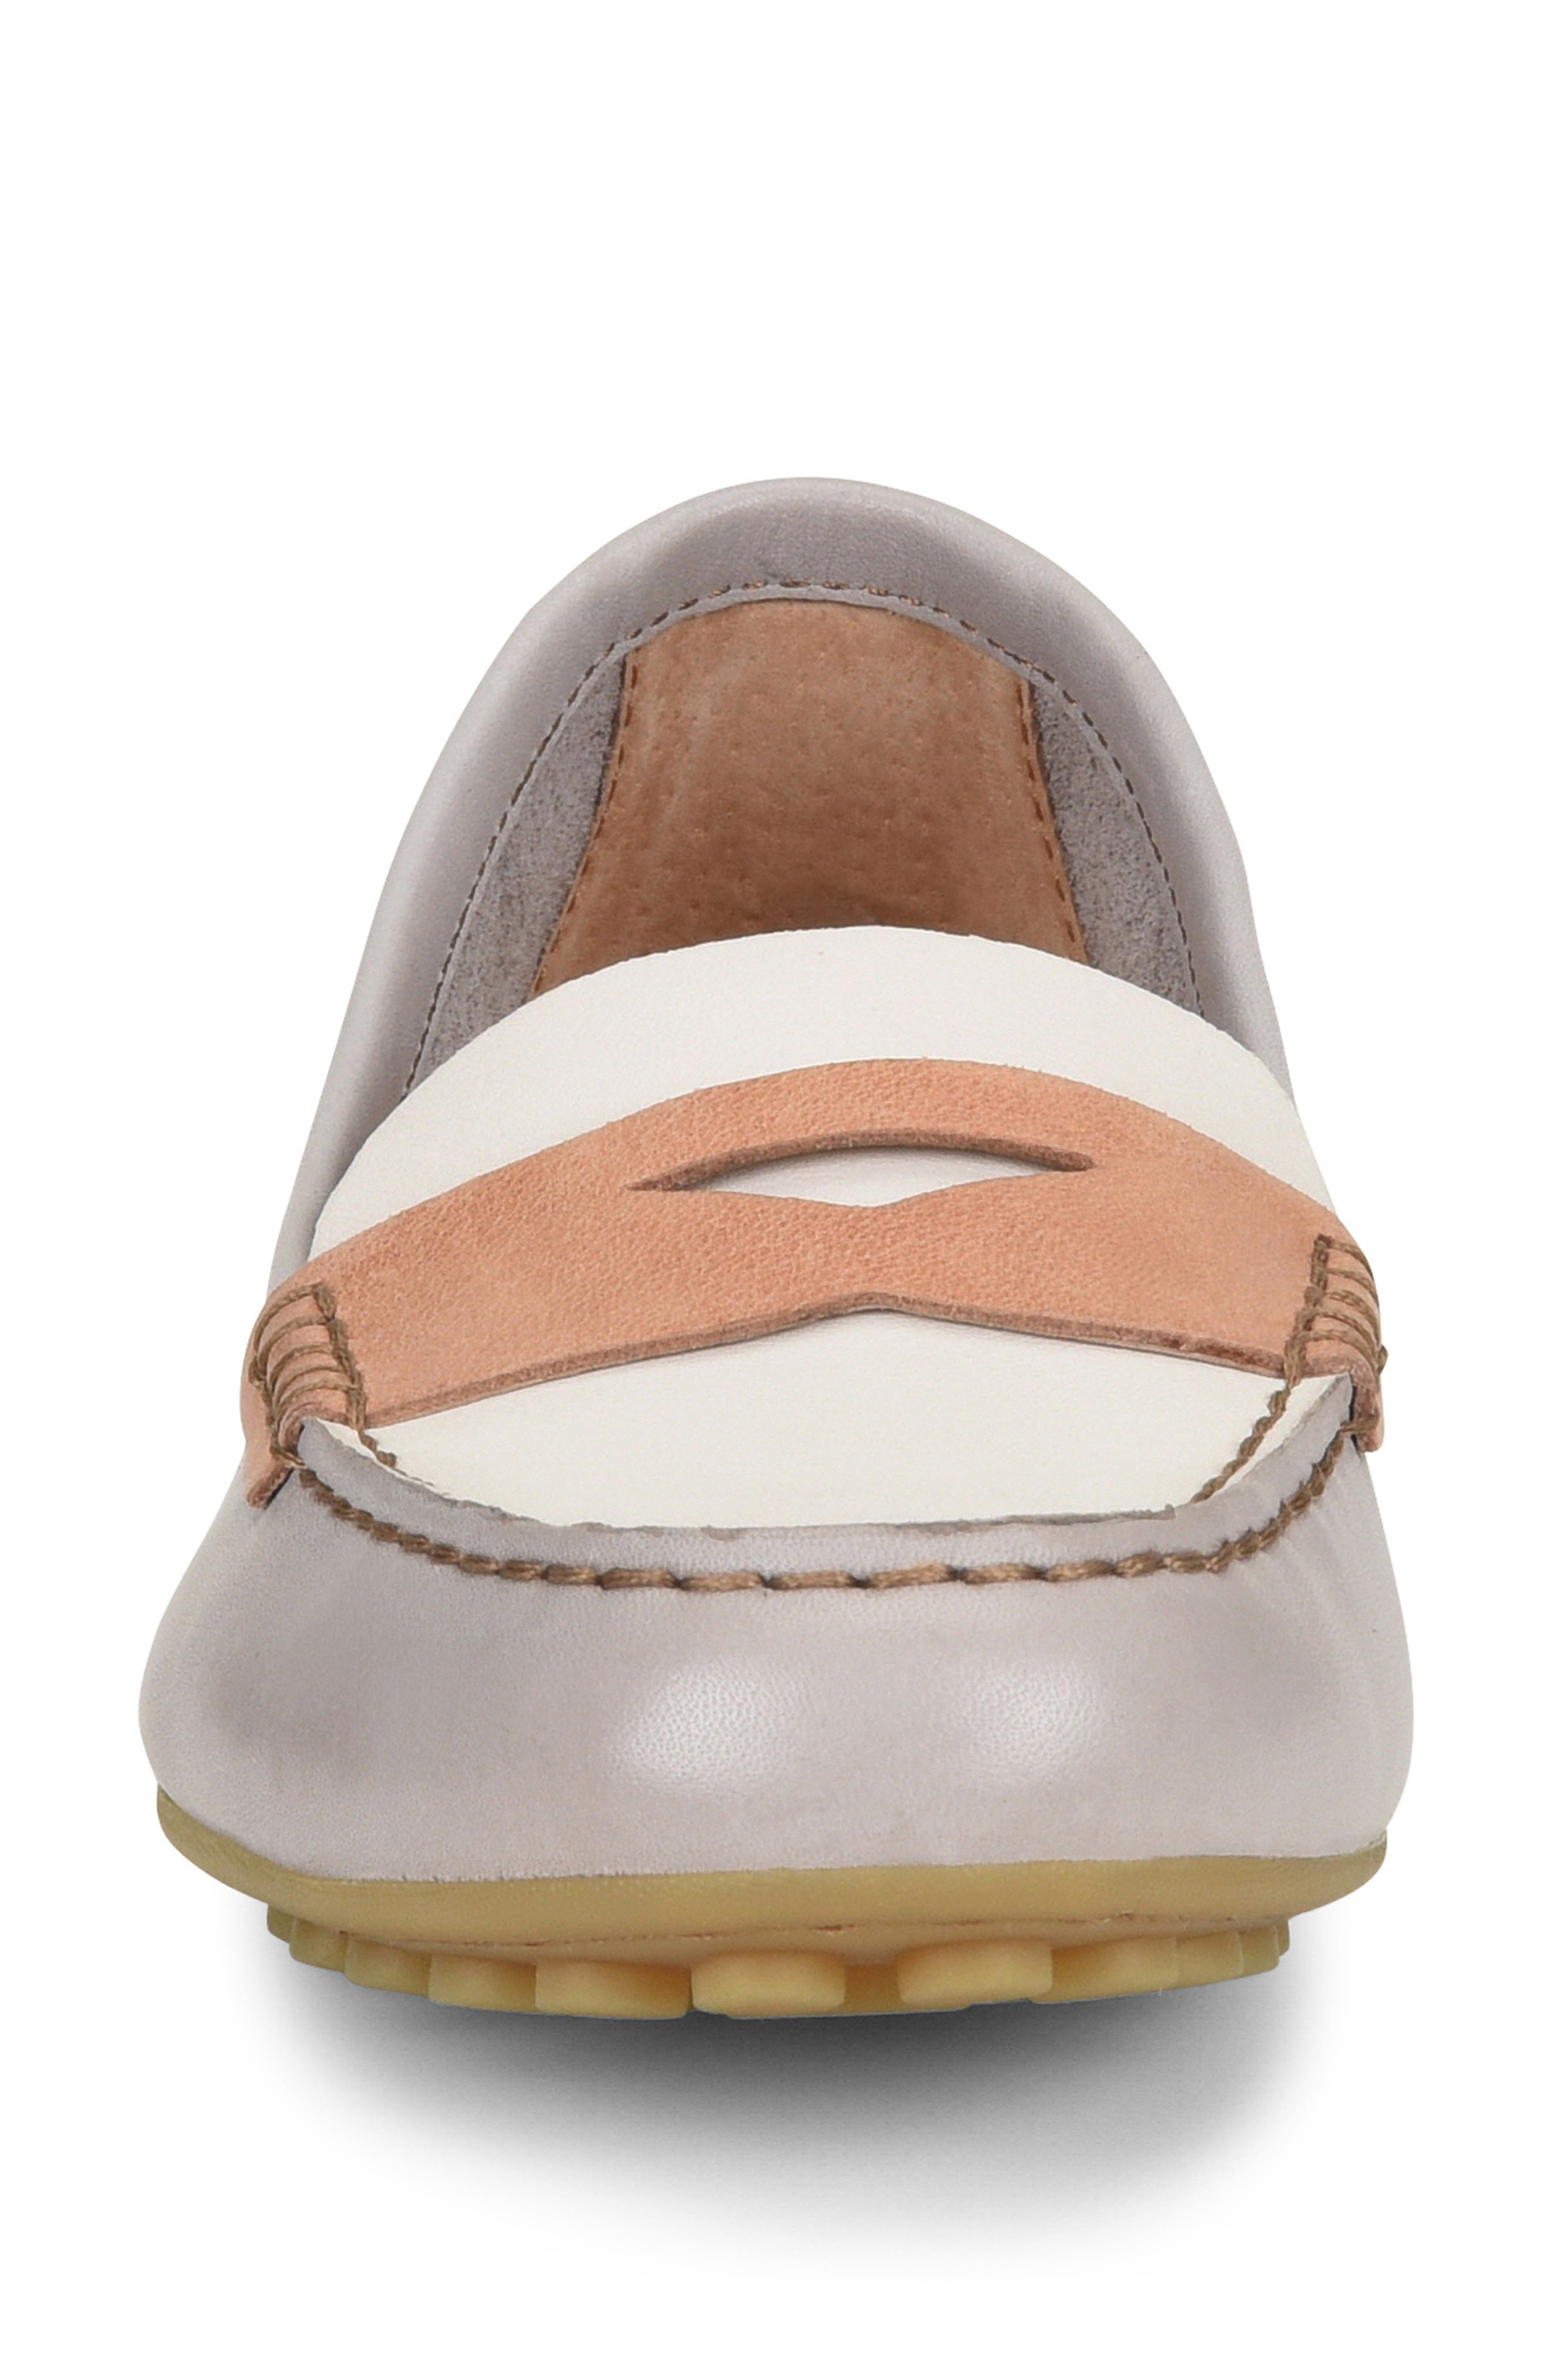 ,                             Malena Penny Loafer,                             Alternate thumbnail 4, color,                             LIT GREY/ WHITE/ BLUSH LEATHER